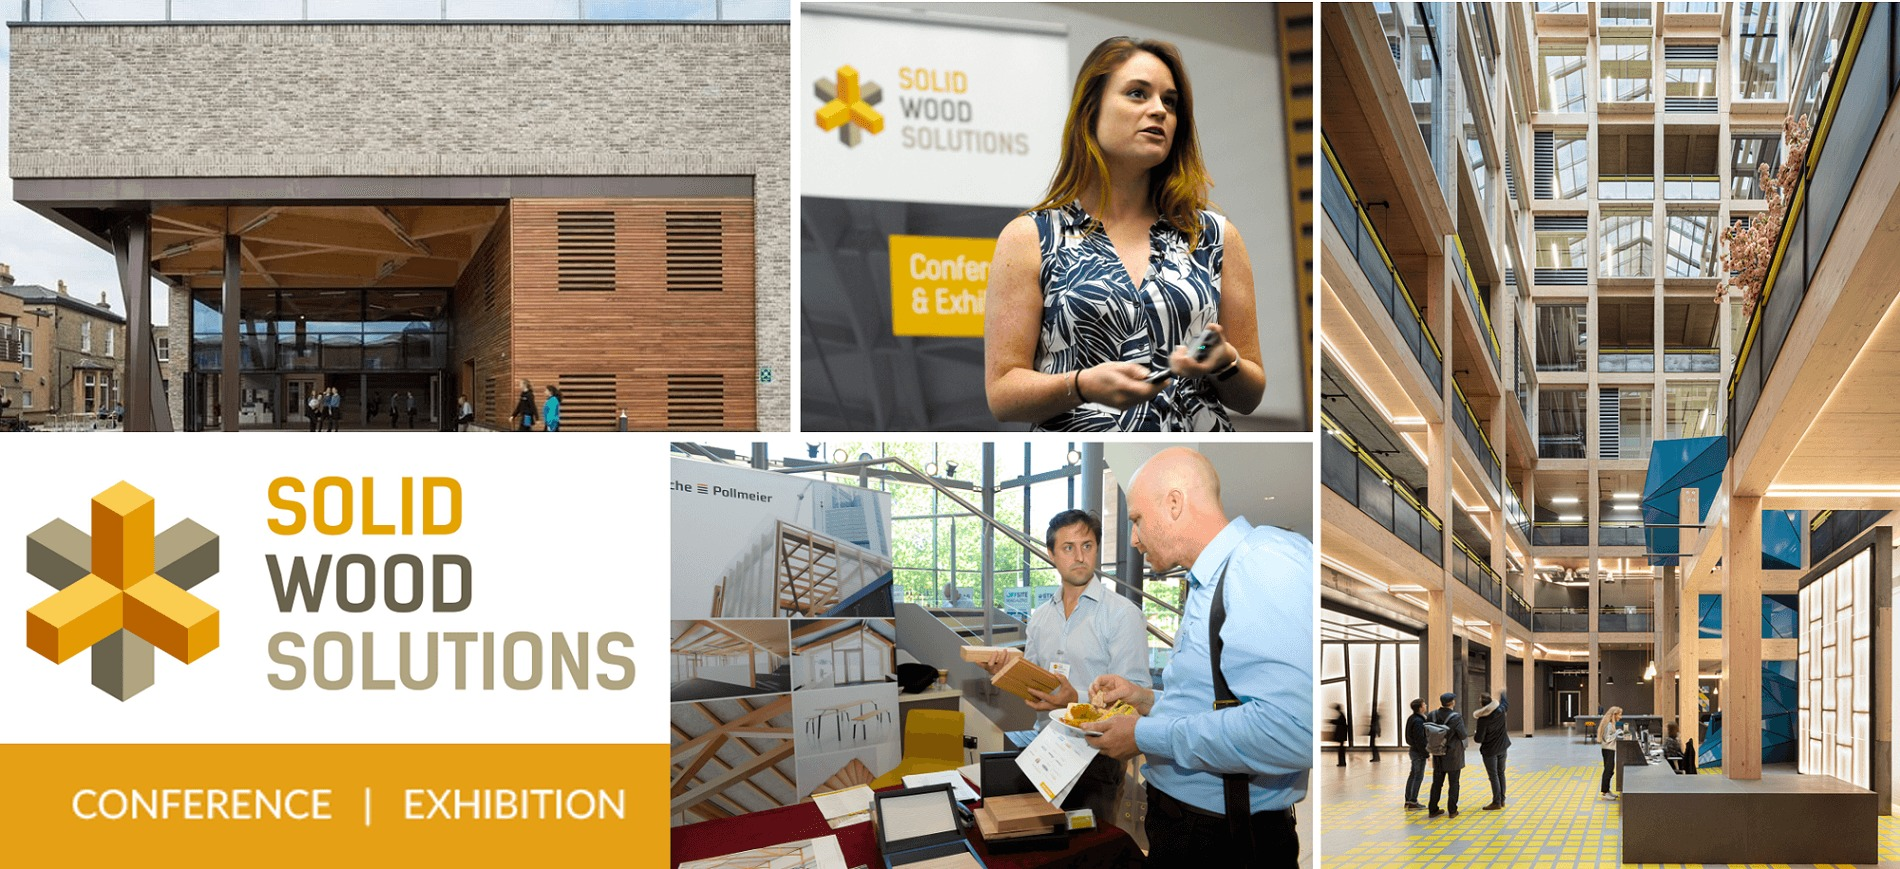 Solid Wood Solutions Conference 2019